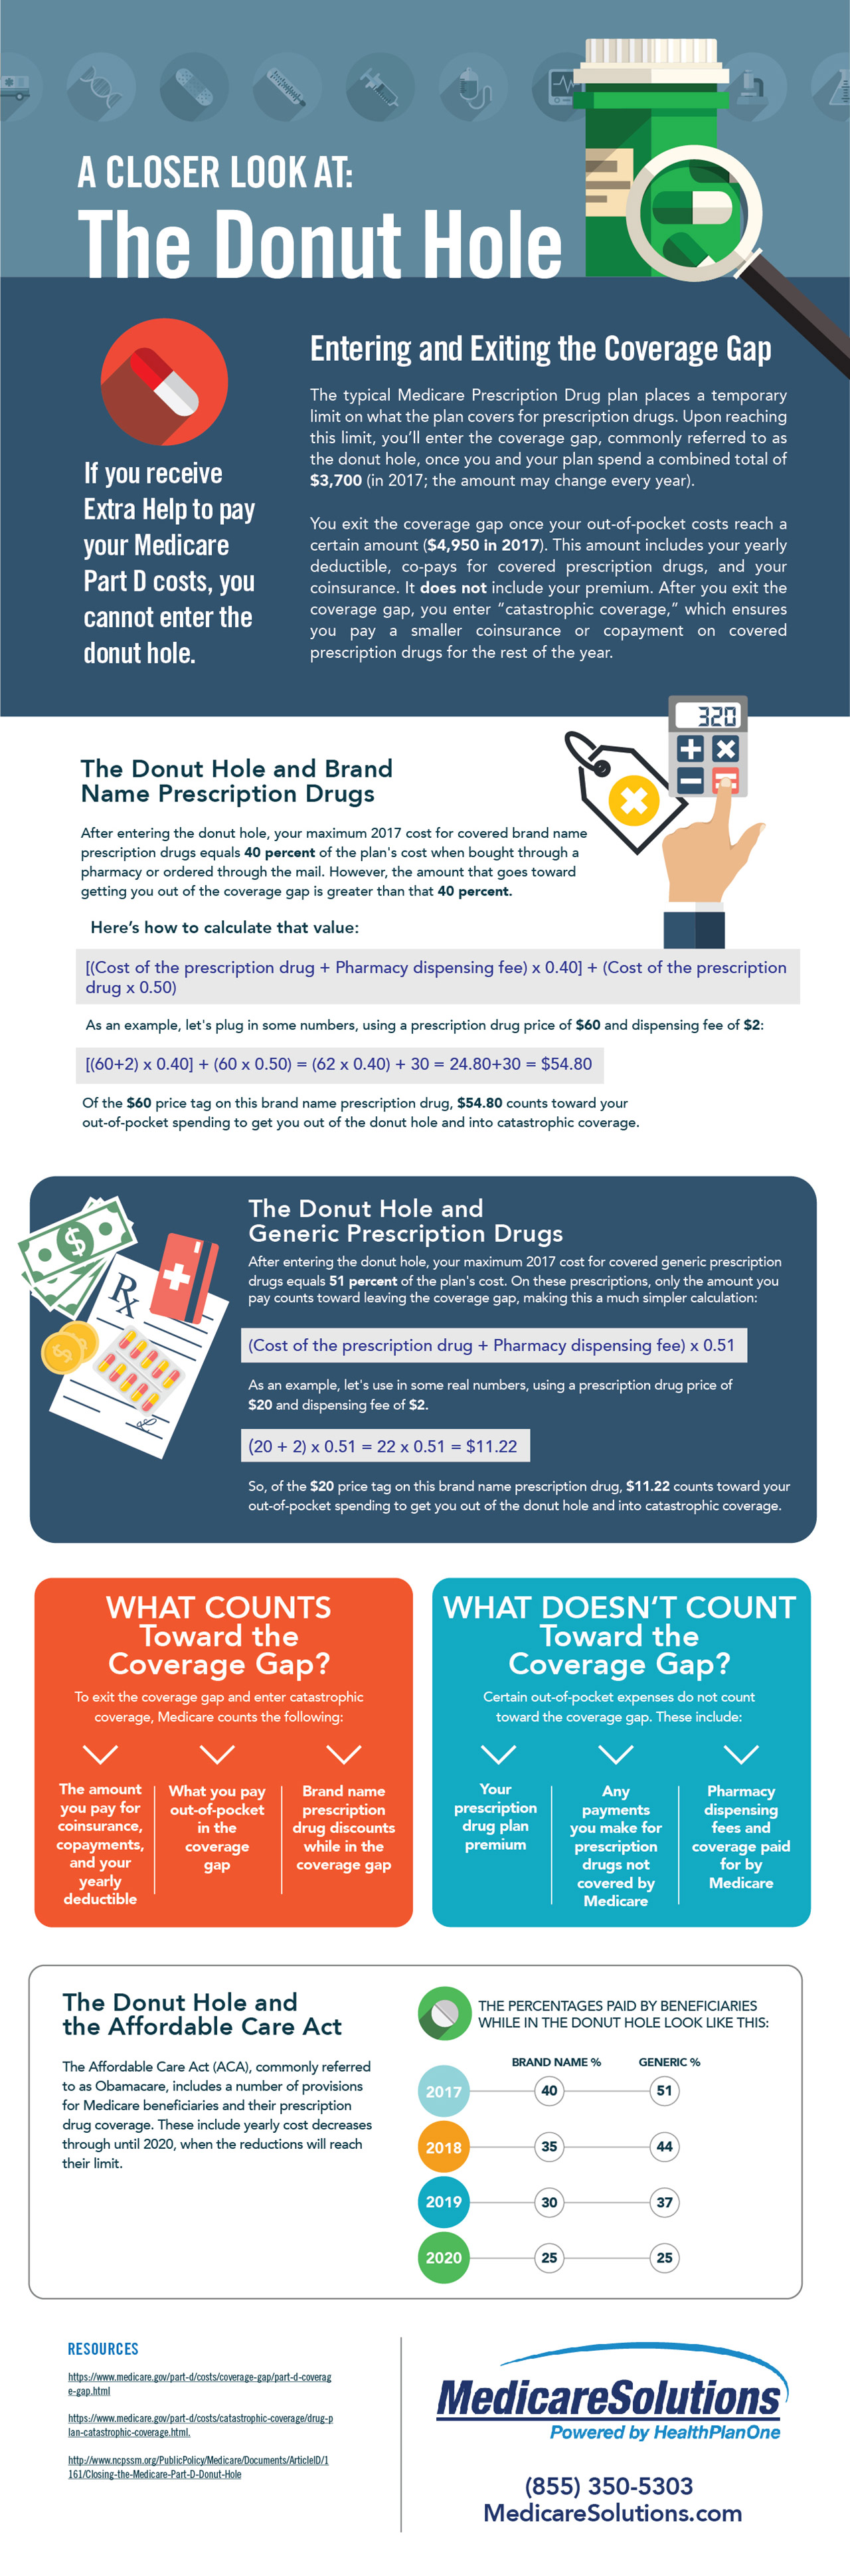 A Closer Look at the Donut Hole - Medicare Solutions Infographic